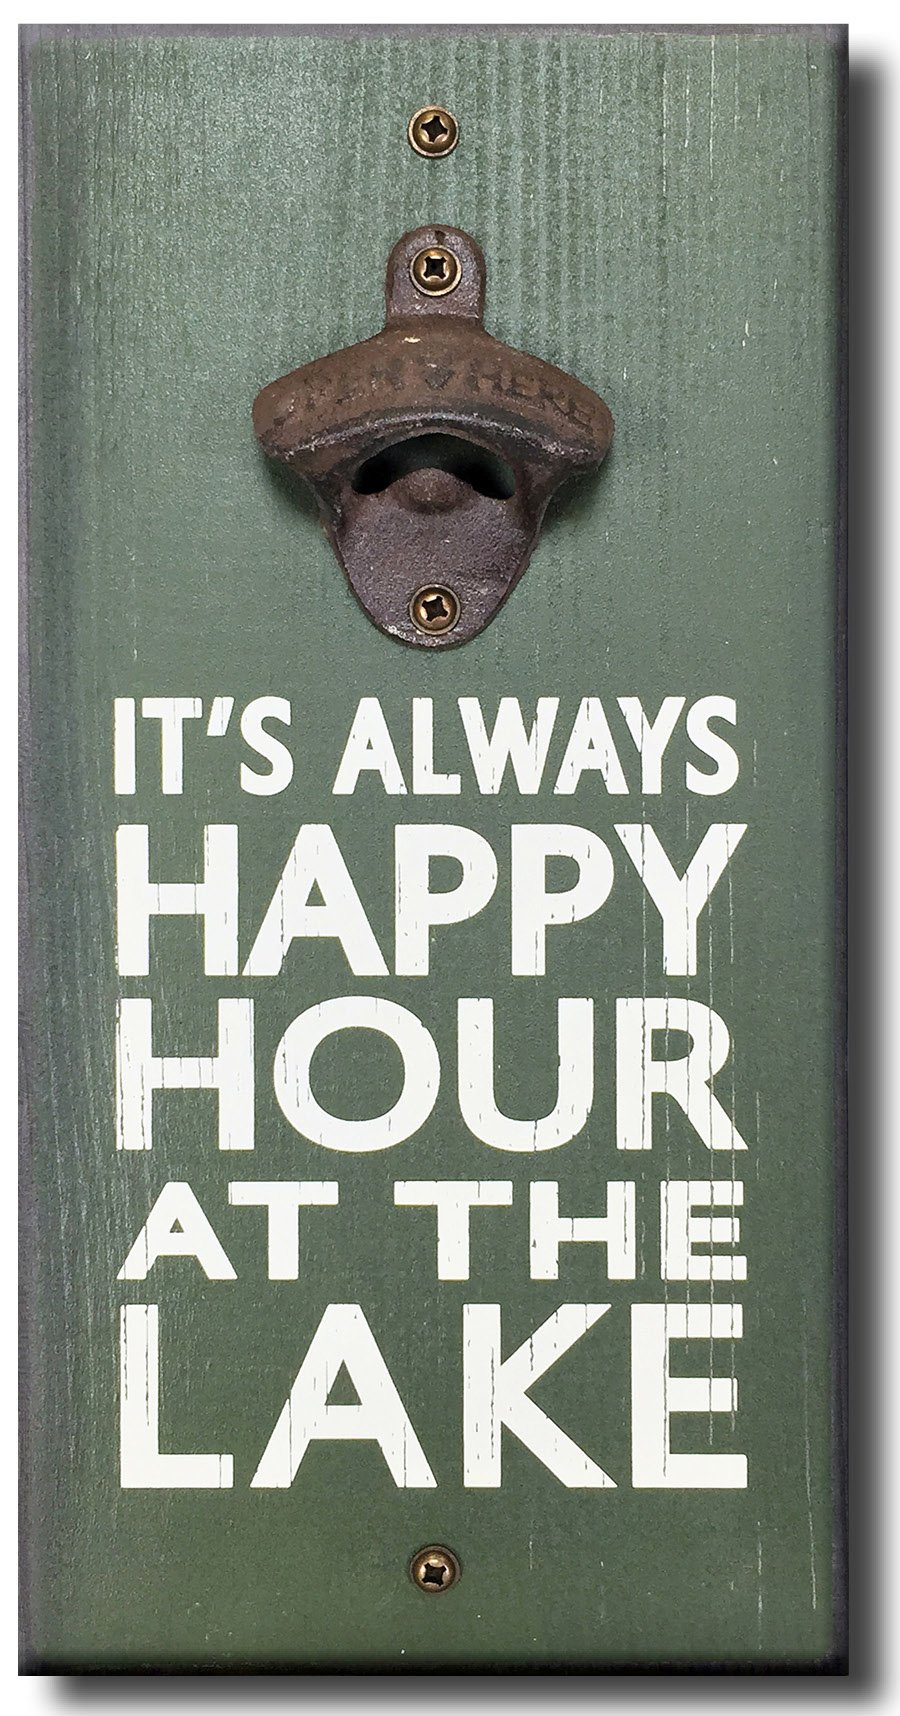 Always Happy Hour at the Lake - Wooden Wall Mounted Bottle Opener by My Word!